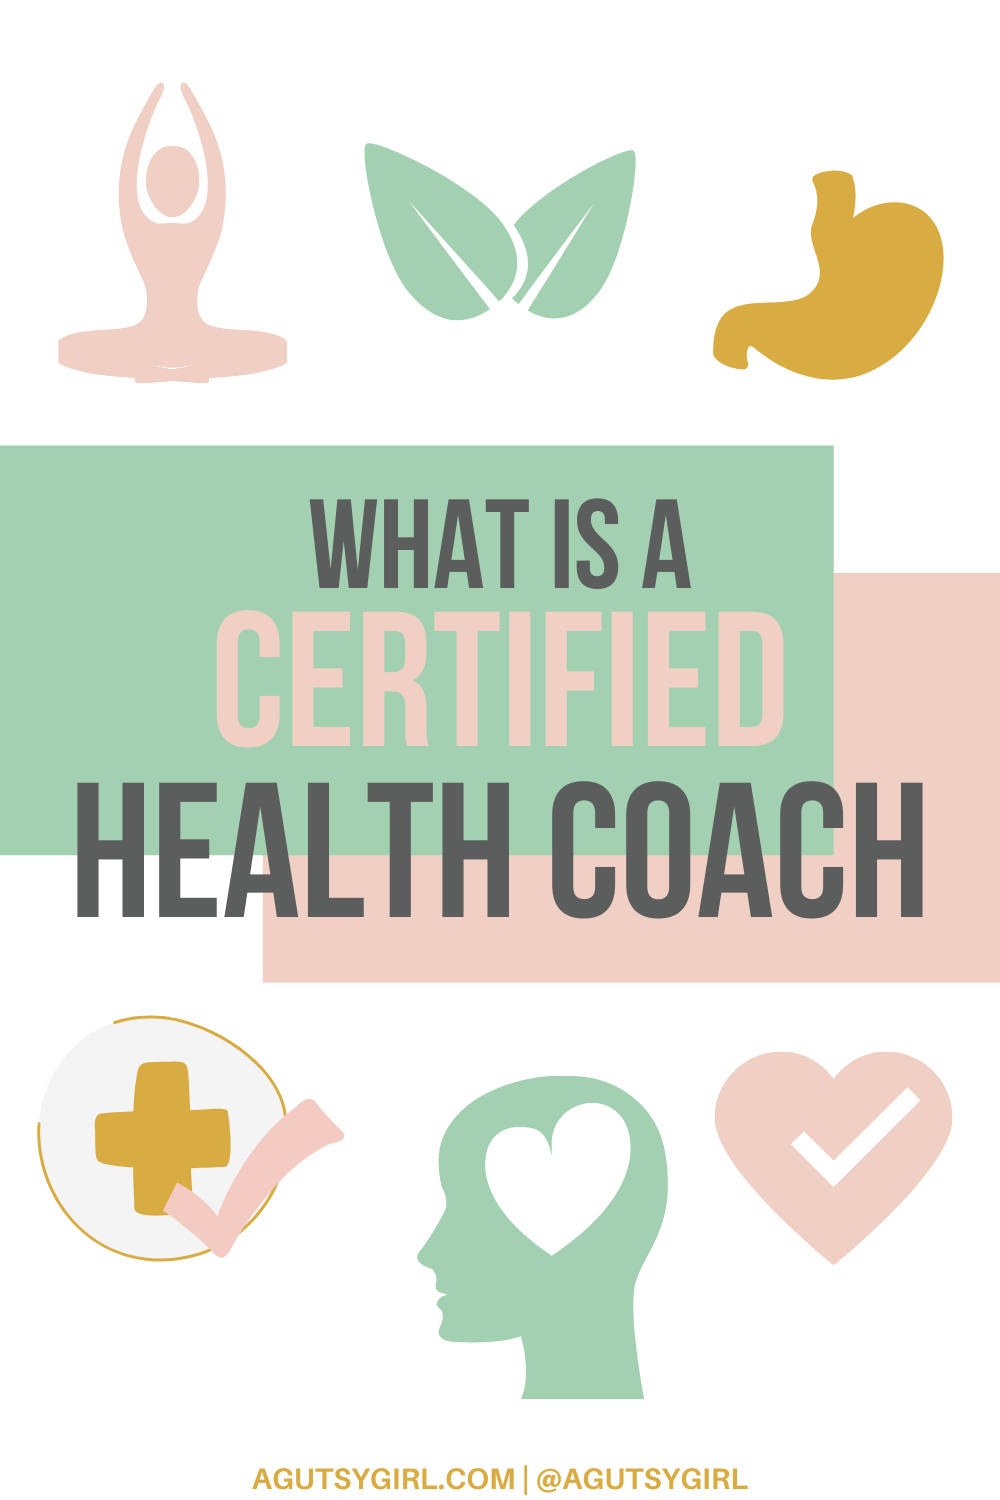 What is a Certified Health Coach agutsygirl.com health coaching #healthcoach #healthcoaching #IIN